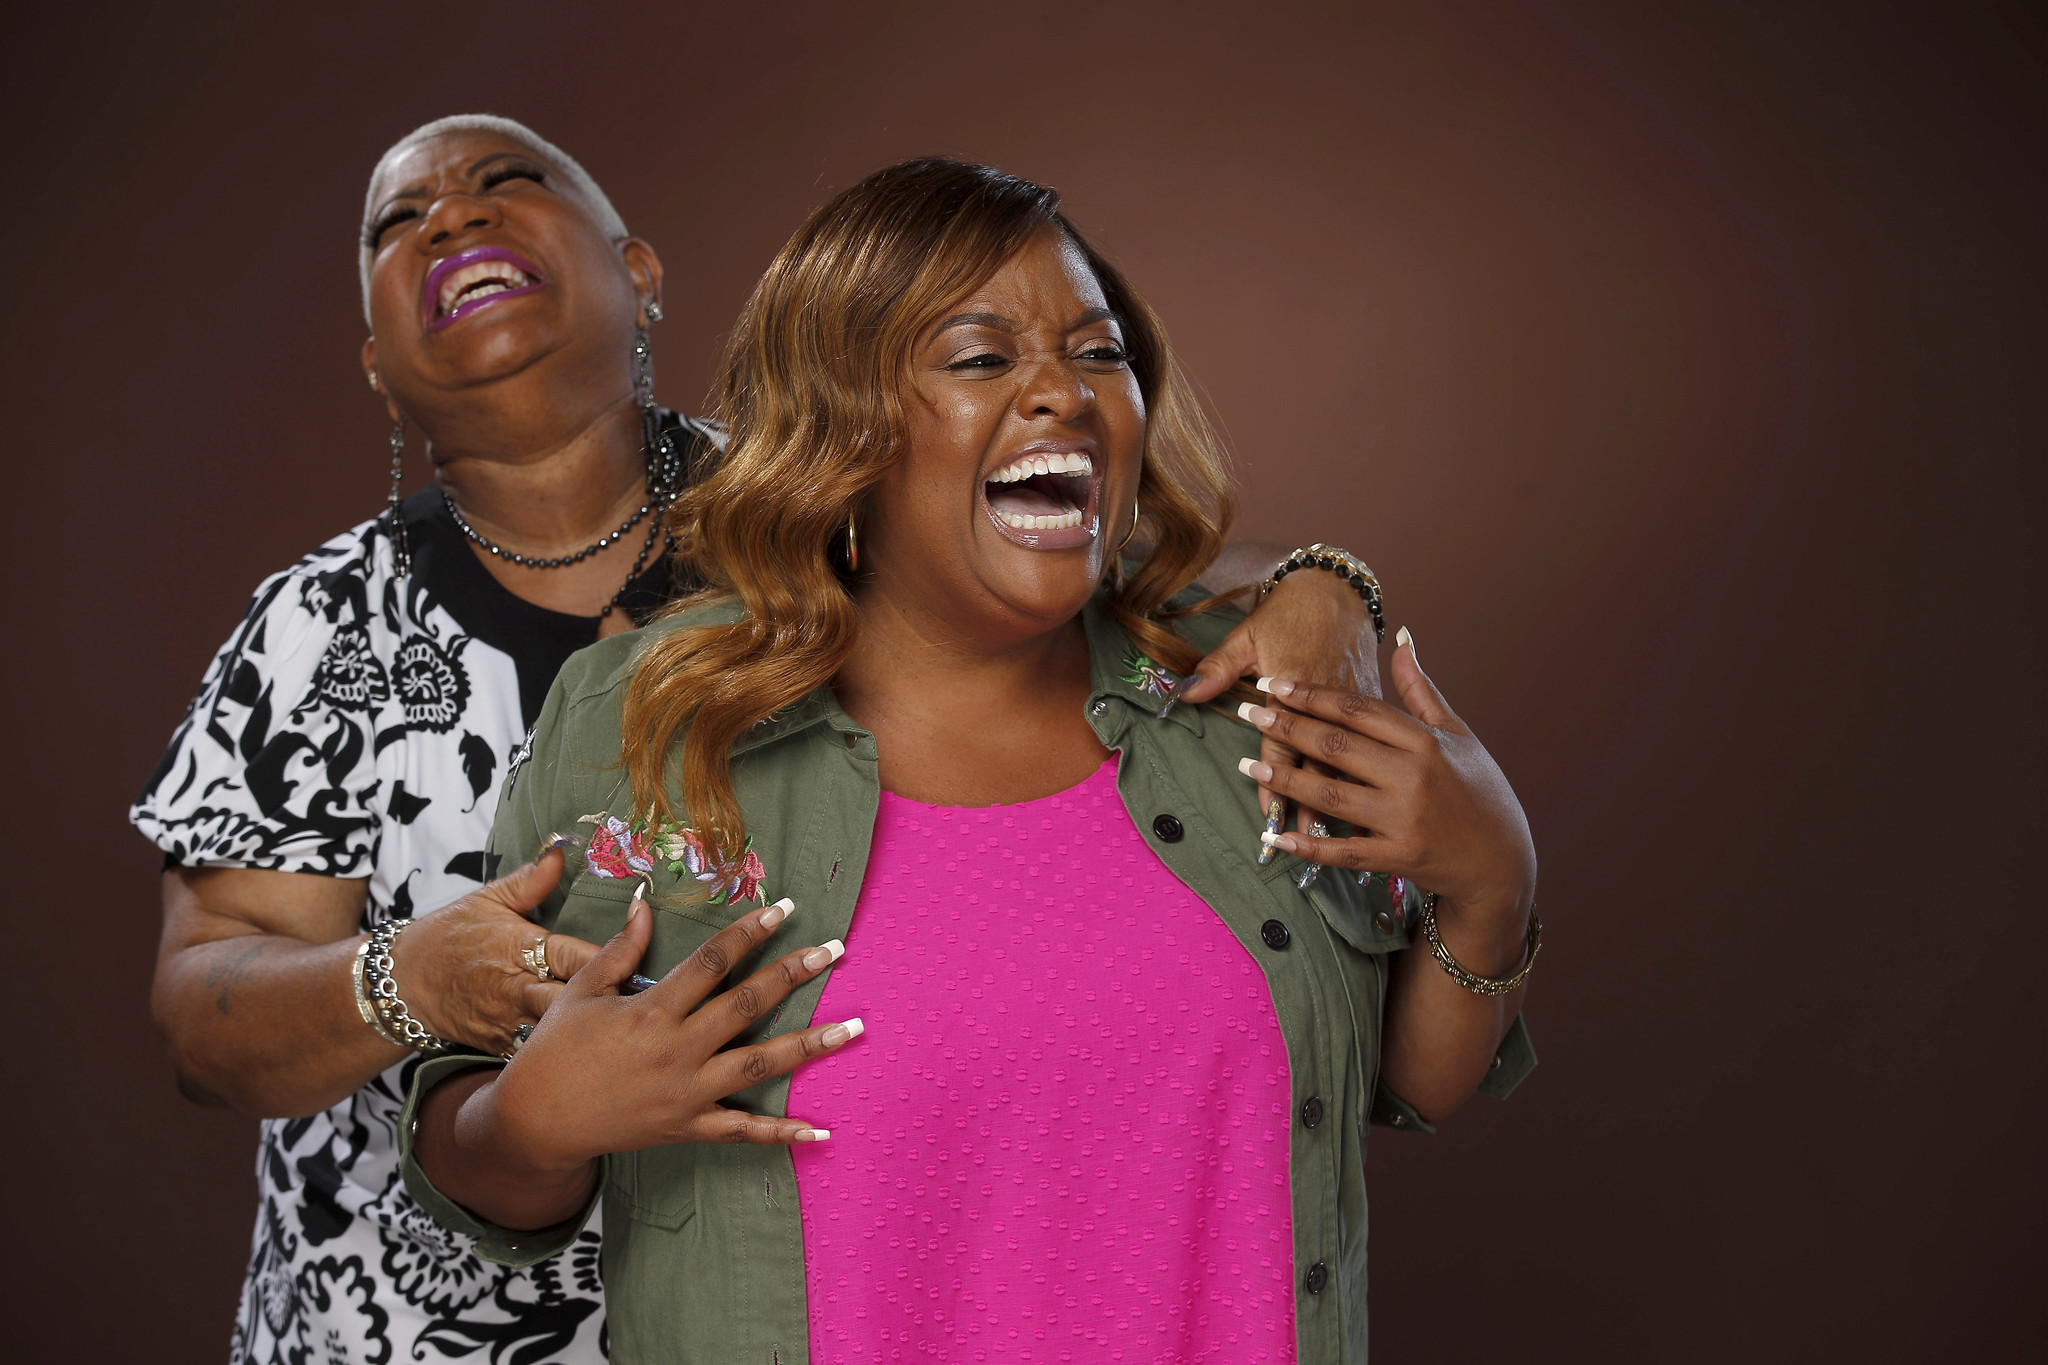 Luenell Campbell, known professionally as Luenell, and Sherri Shepherd laugh together during a photo shoot with the L.A. Times.